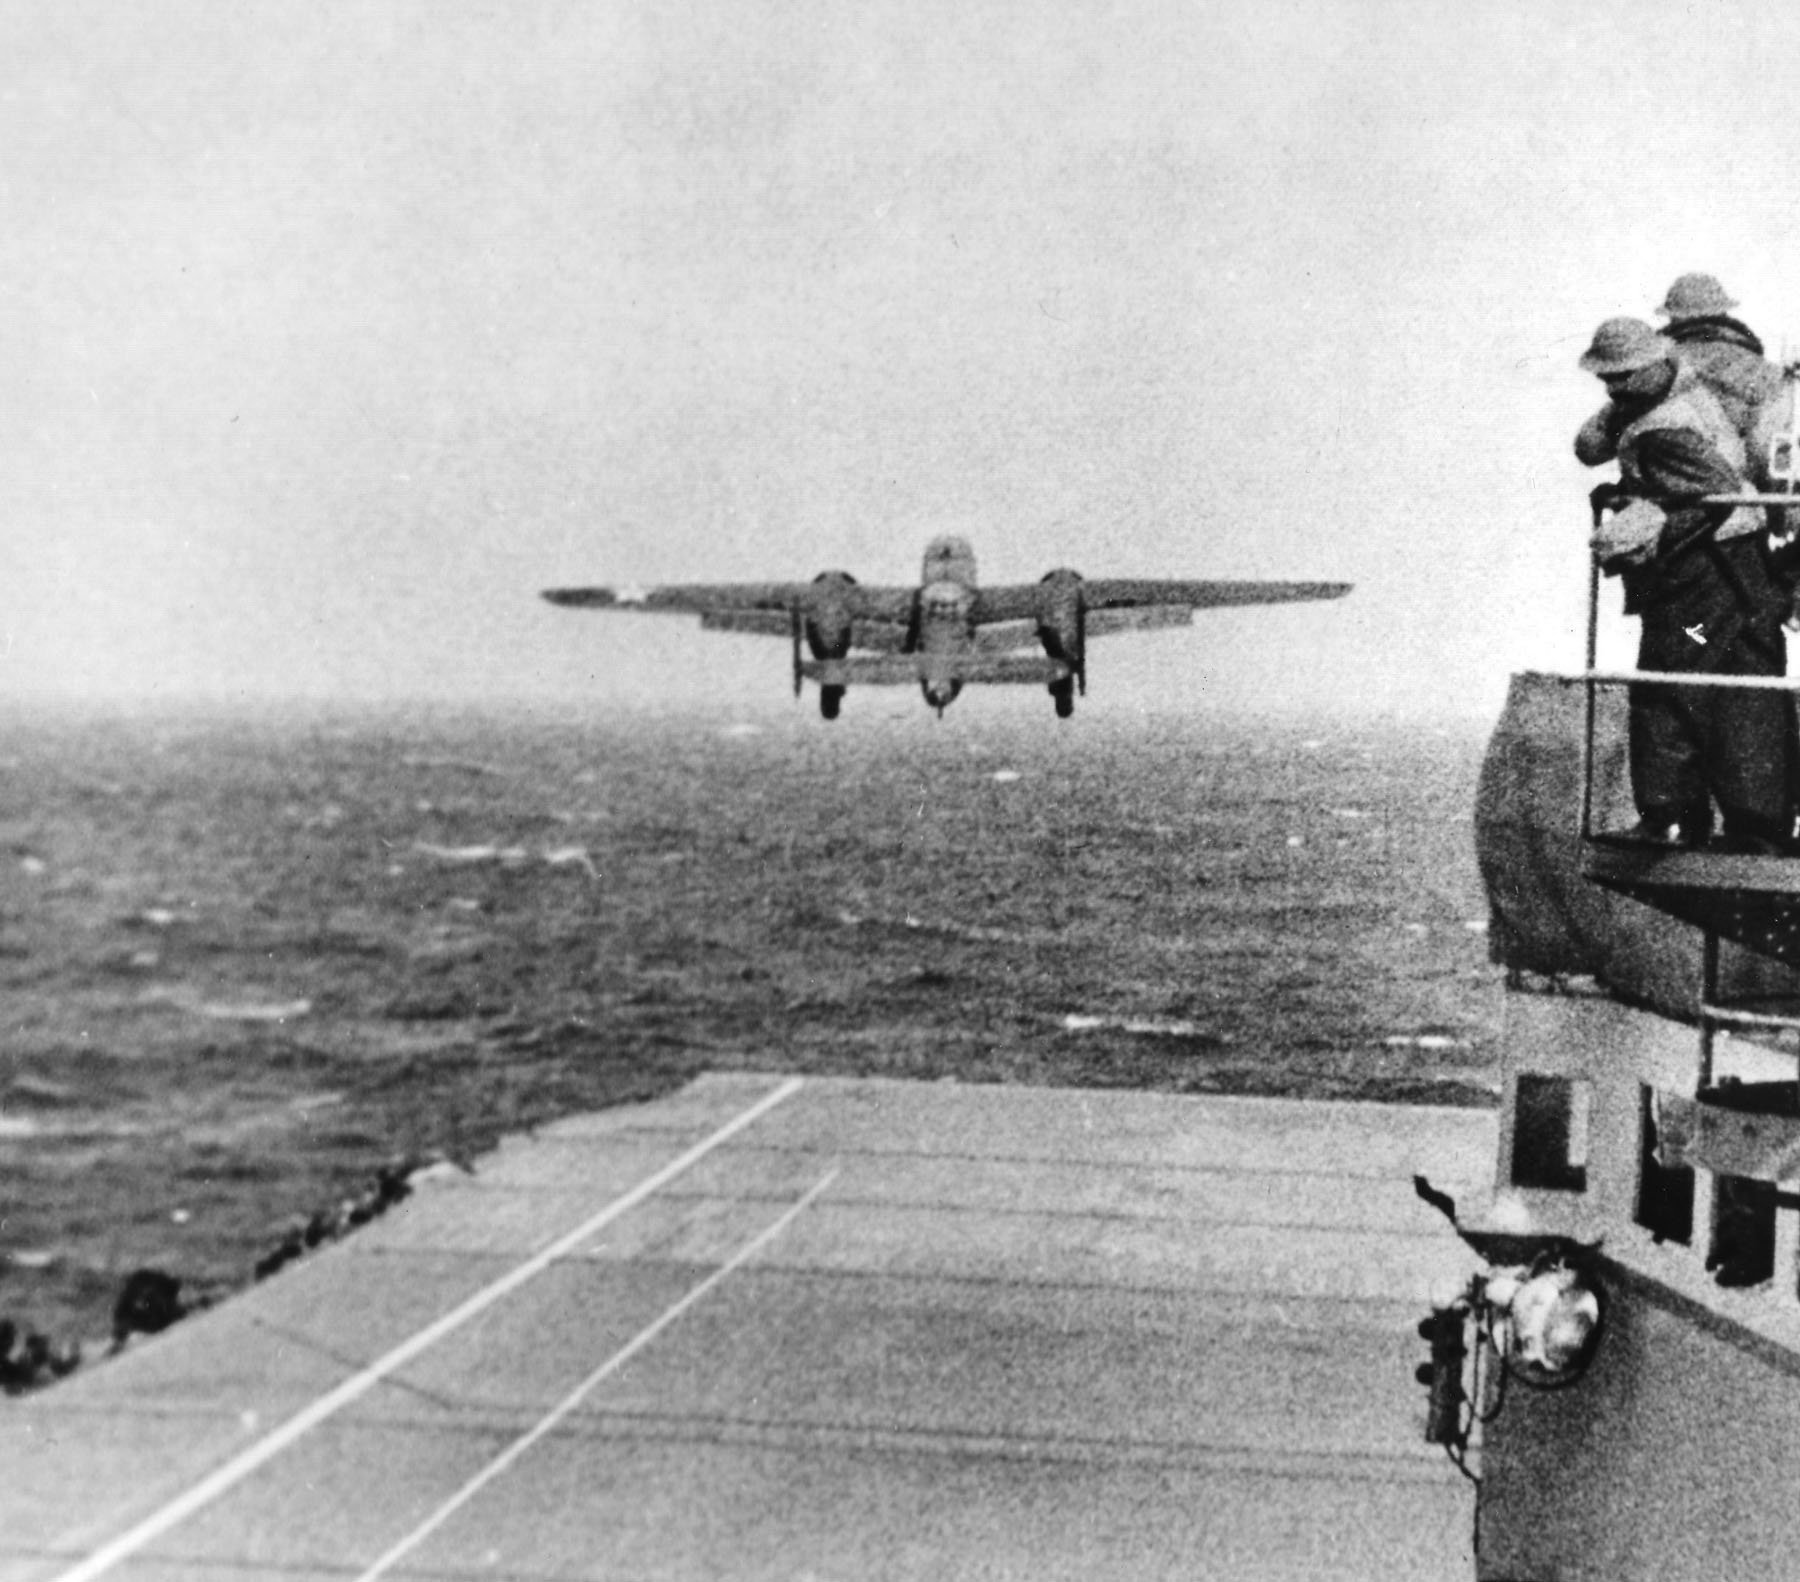 Doolittle Raid, Mitchell Leaving Deck